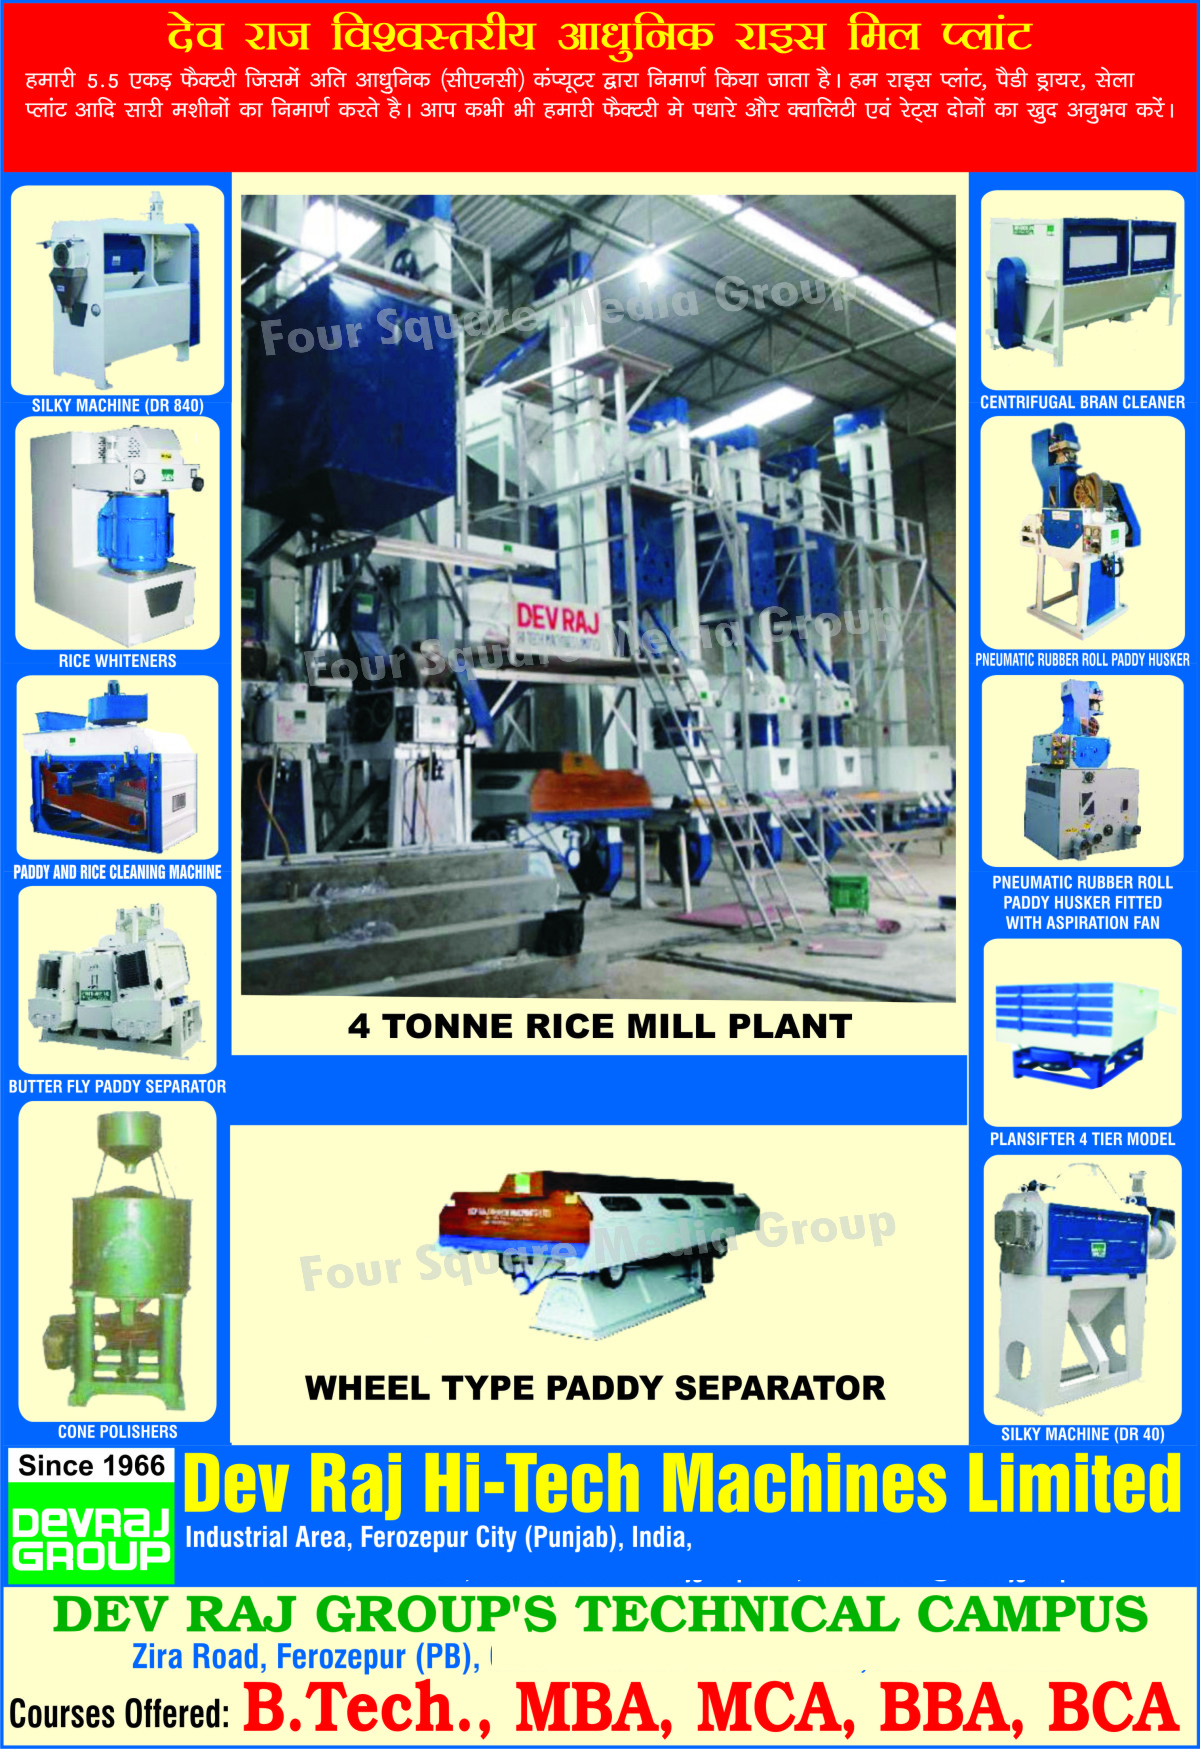 Rice Whiteners Plant, Wheel Type Paddy Separator, Butter Fly Paddy Separator, Cone Polishers, Rice Mill Plant, Paddy Cleaning Machine, Rice Cleaning Machine, Silky Machine, Pneumatic Rubber Roll Paddy Husker, Centrifugal bran Cleaner, Pneumatic Rubber Roll Paddy Husker